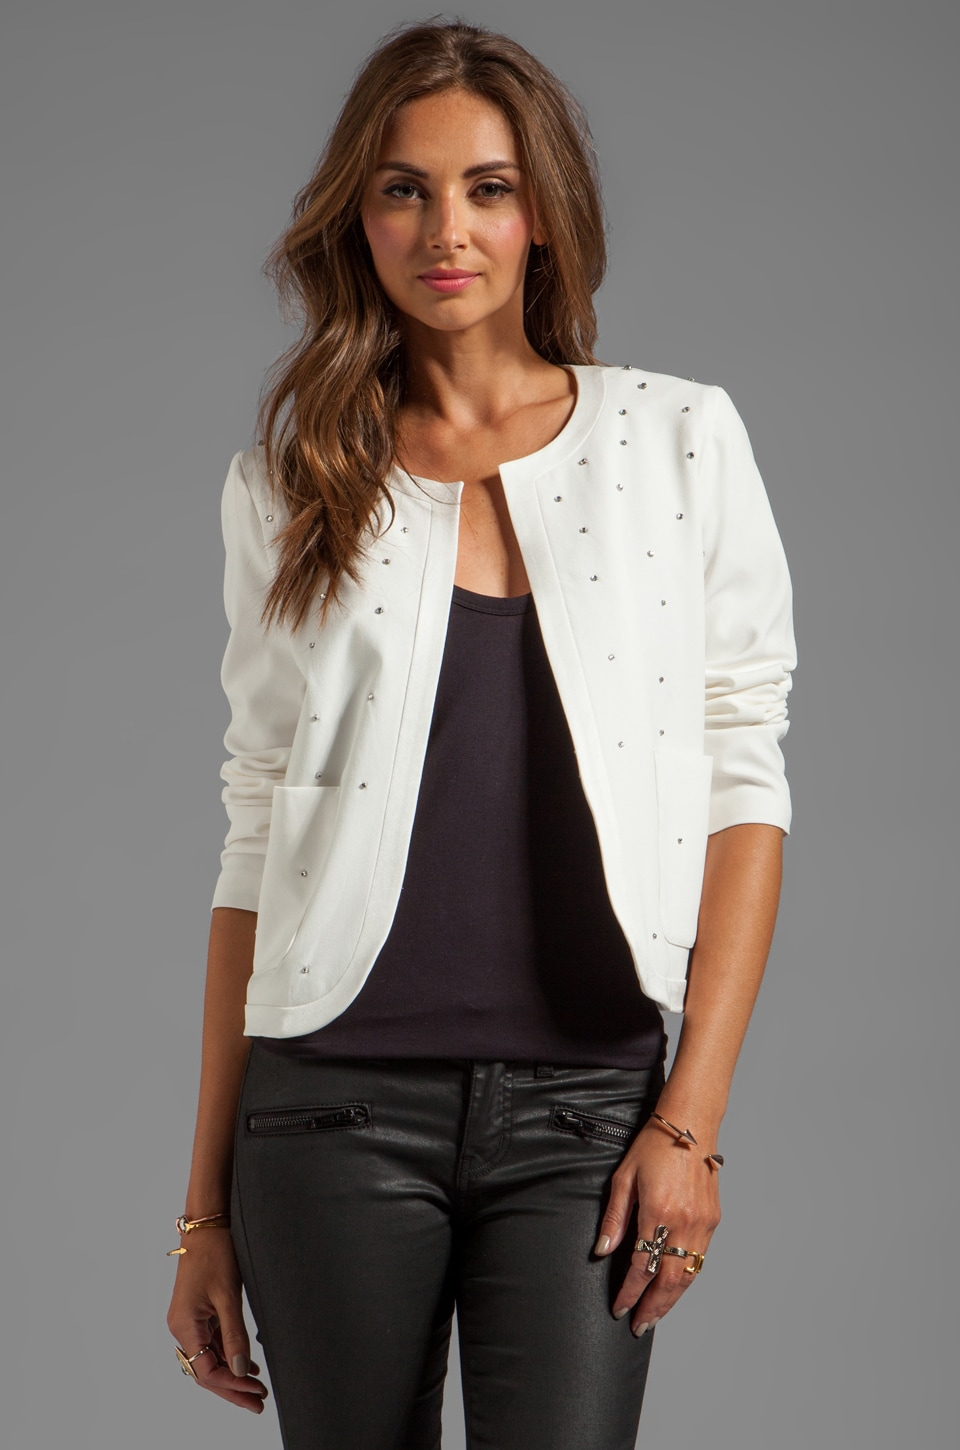 Juicy Couture Fluid Crepe Jacket in Angel